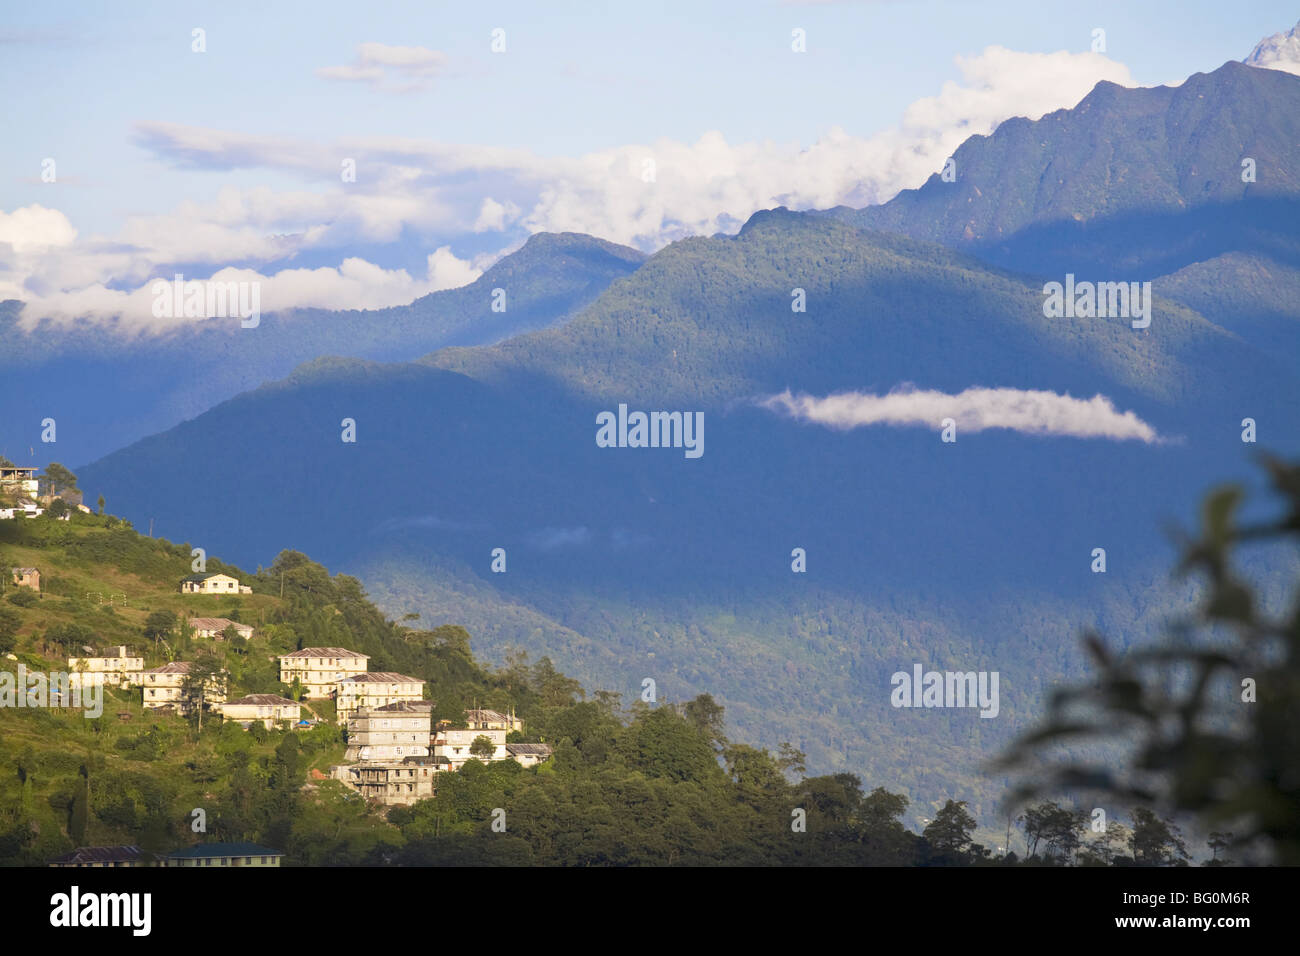 Vue du point de vue Tashi, Gangtok, Sikkim, Inde, Asie Photo Stock